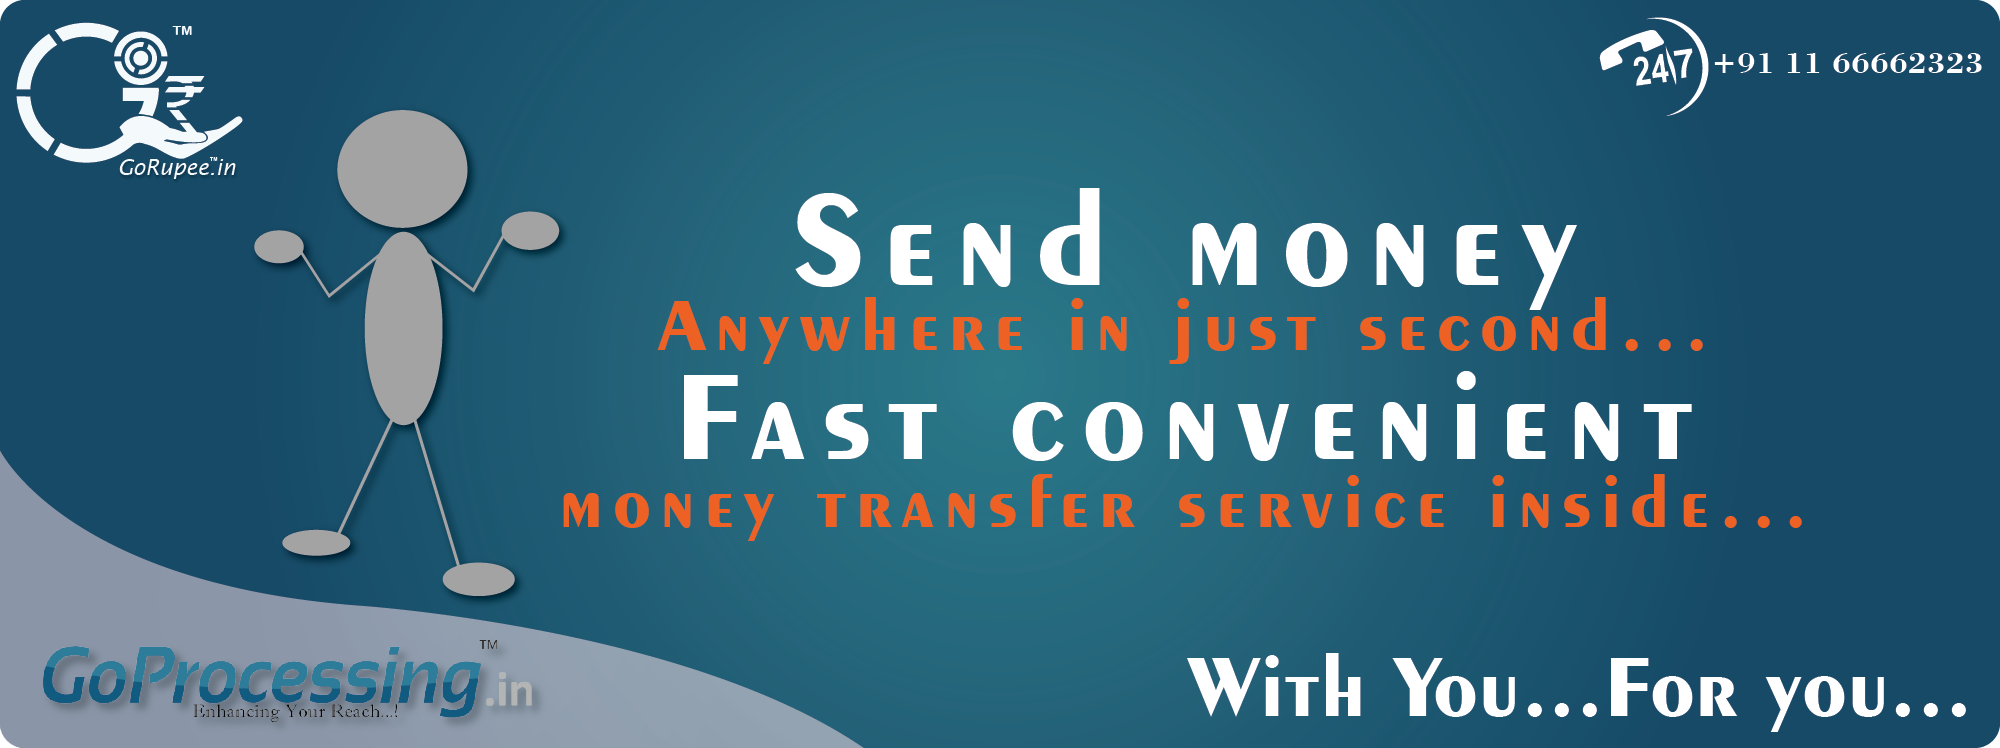 Send Money Anywhere In Just Second Fast Convenient